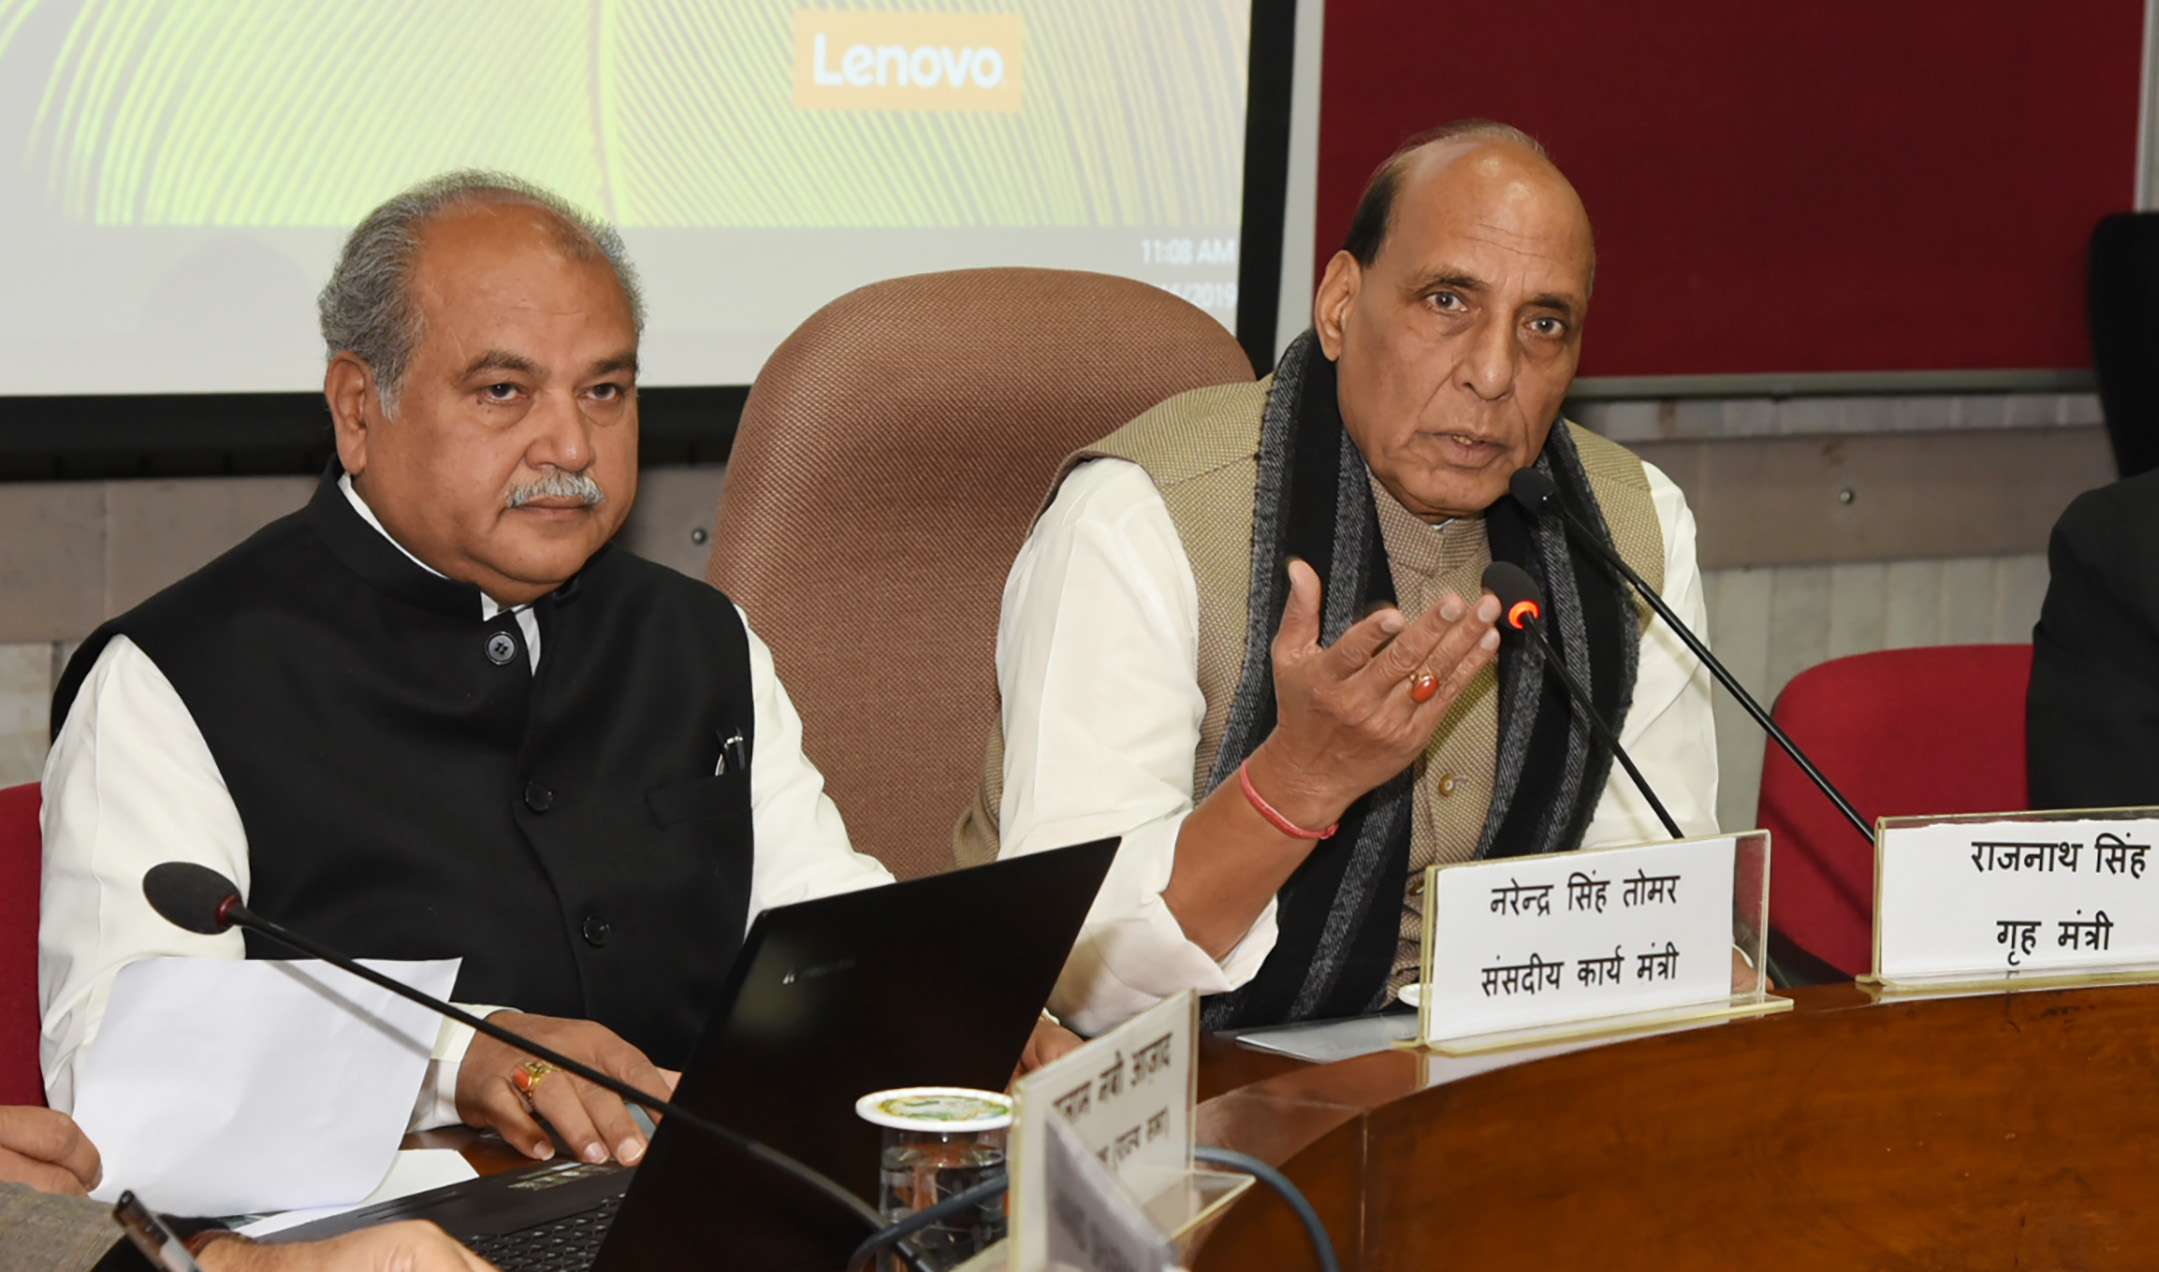 Union Home Minister chairs meeting of floor leaders of political parties in both the houses of parliament in the wake of Thursday's Pulwama attack